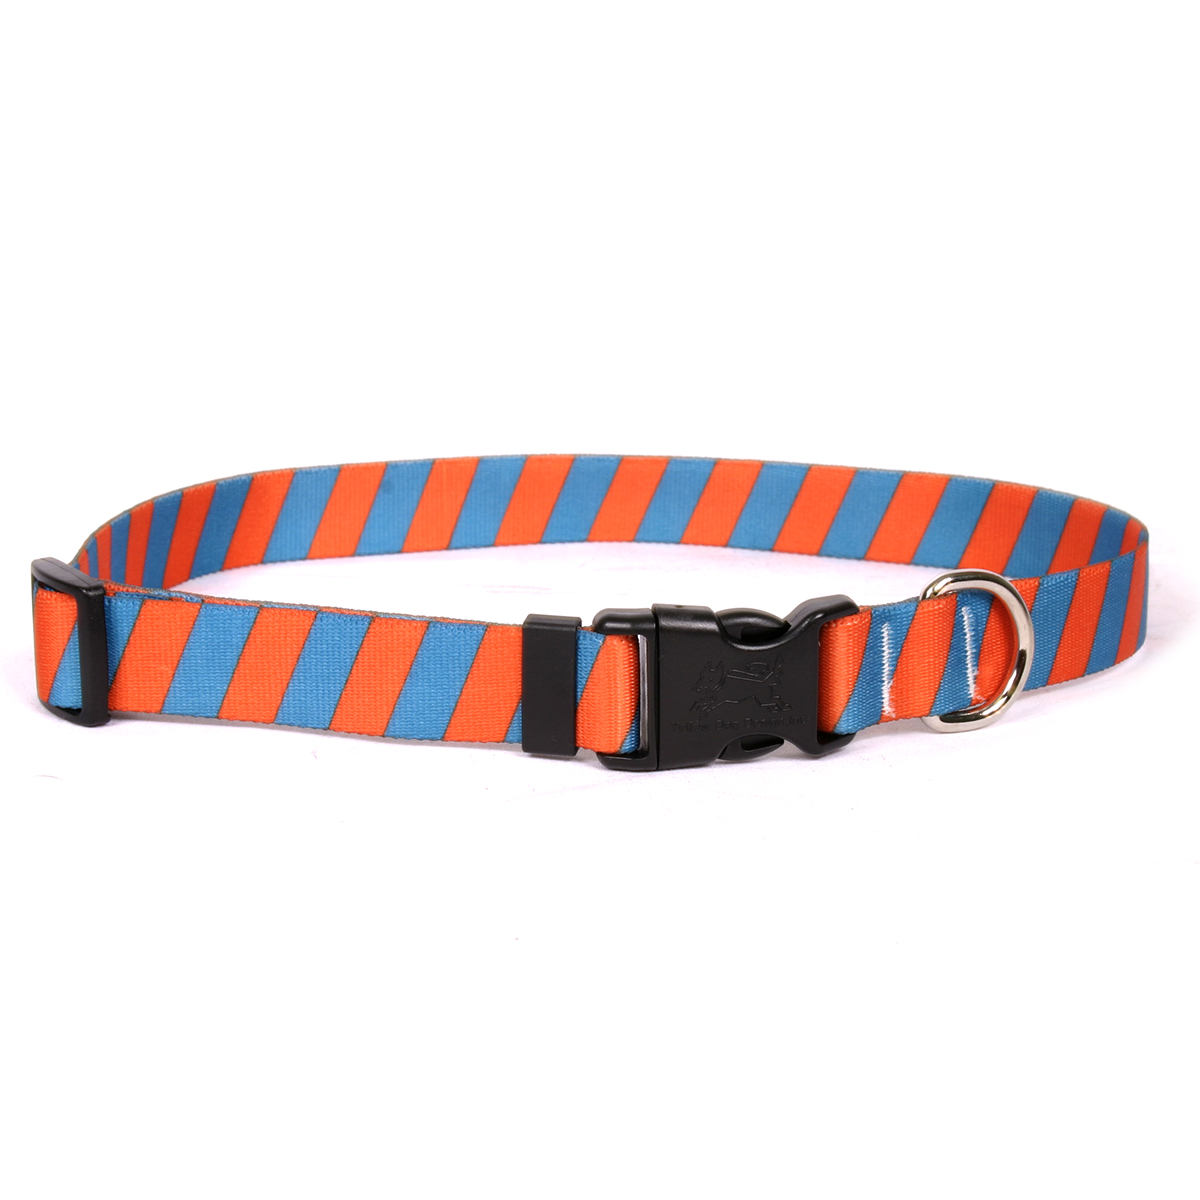 Team Spirit Orange and Teal Standard Collar